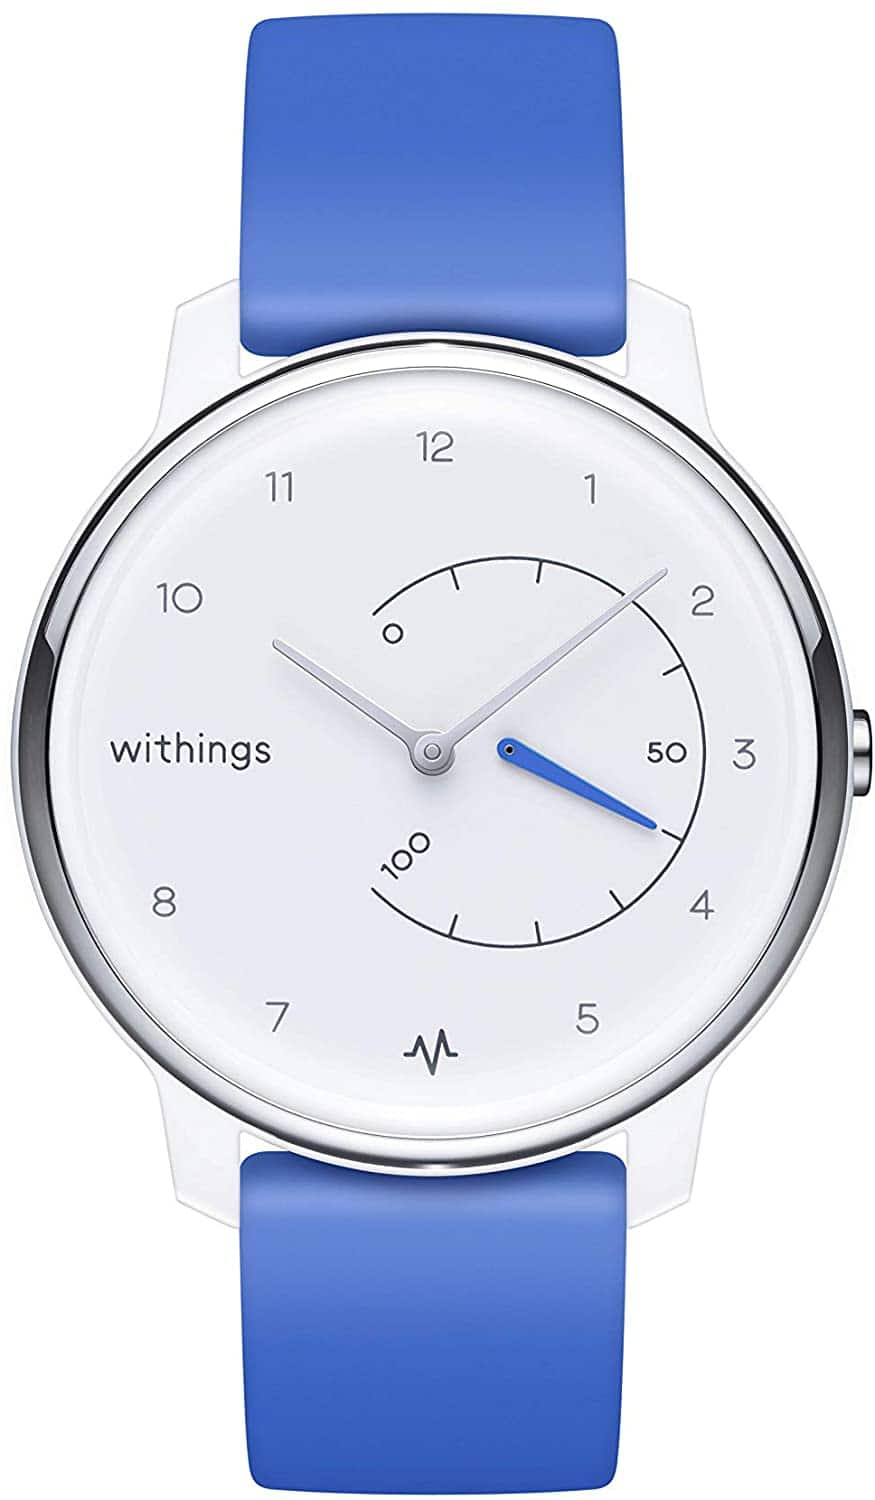 Withings Move ECG Hybrid Smartwatch Health tracker from amazon.es $73.99 incl S&H